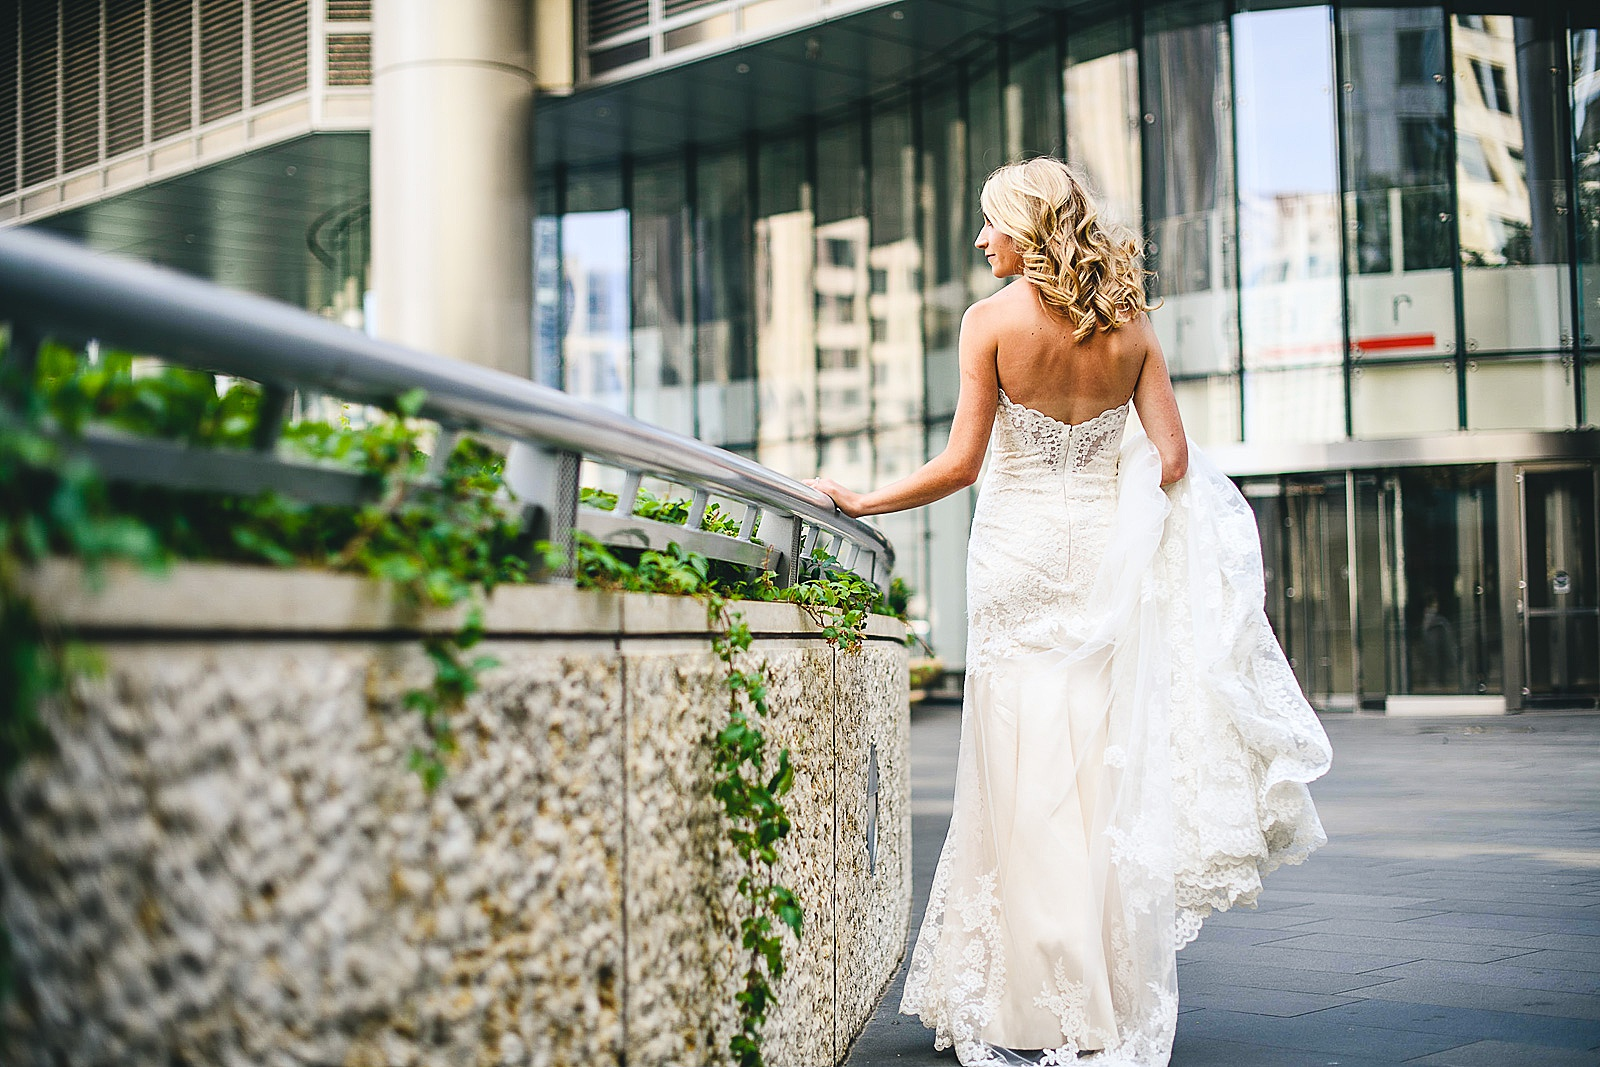 31 bride portrait in chicago - Audrey + Jake's Beautiful Chicago Wedding at Chez